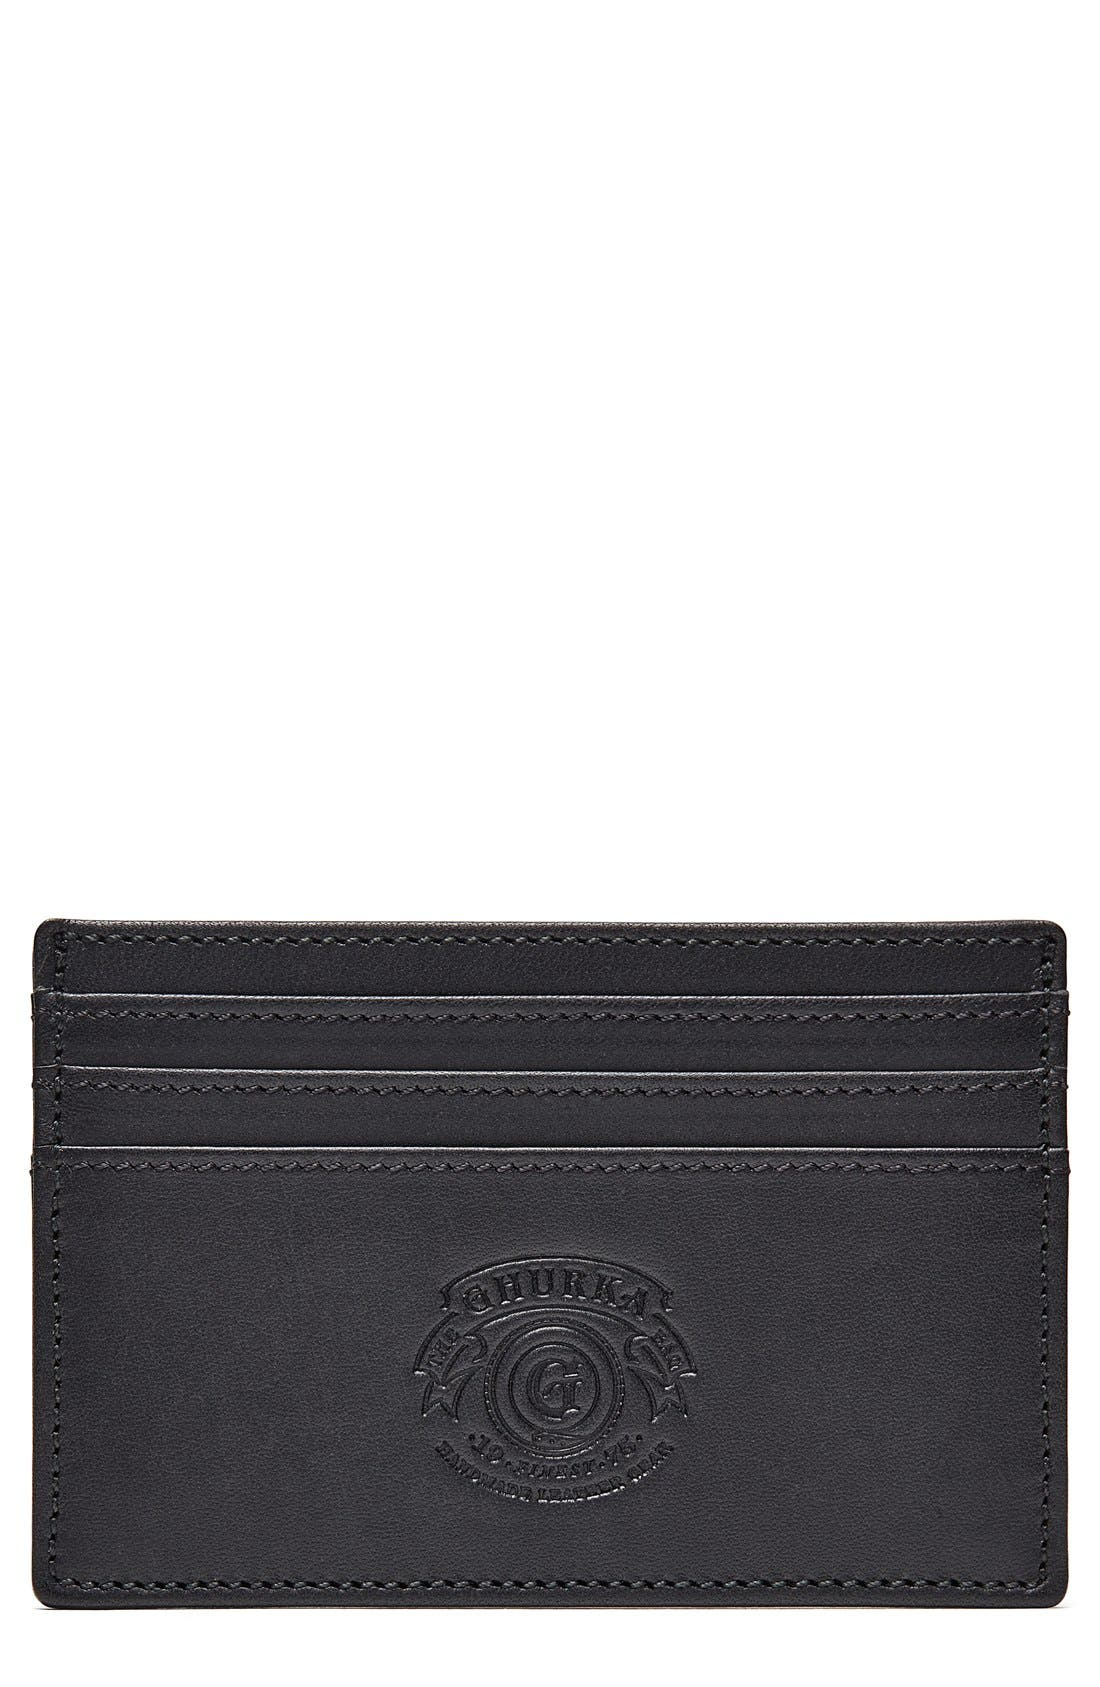 Main Image - Ghurka Leather Card Case